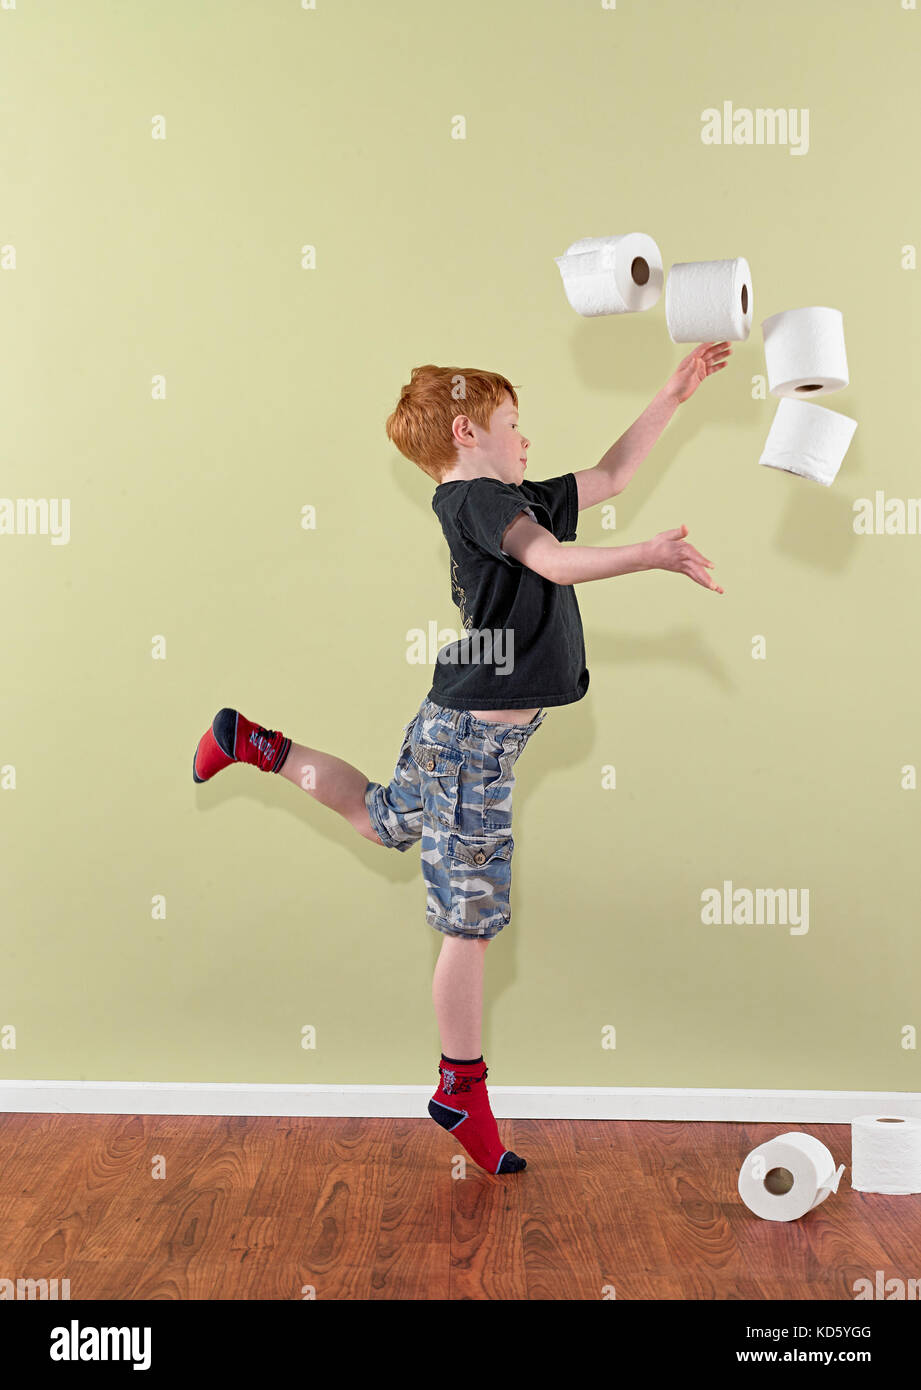 Boy 4-7 throwing rolls of toilet paper - Stock Image